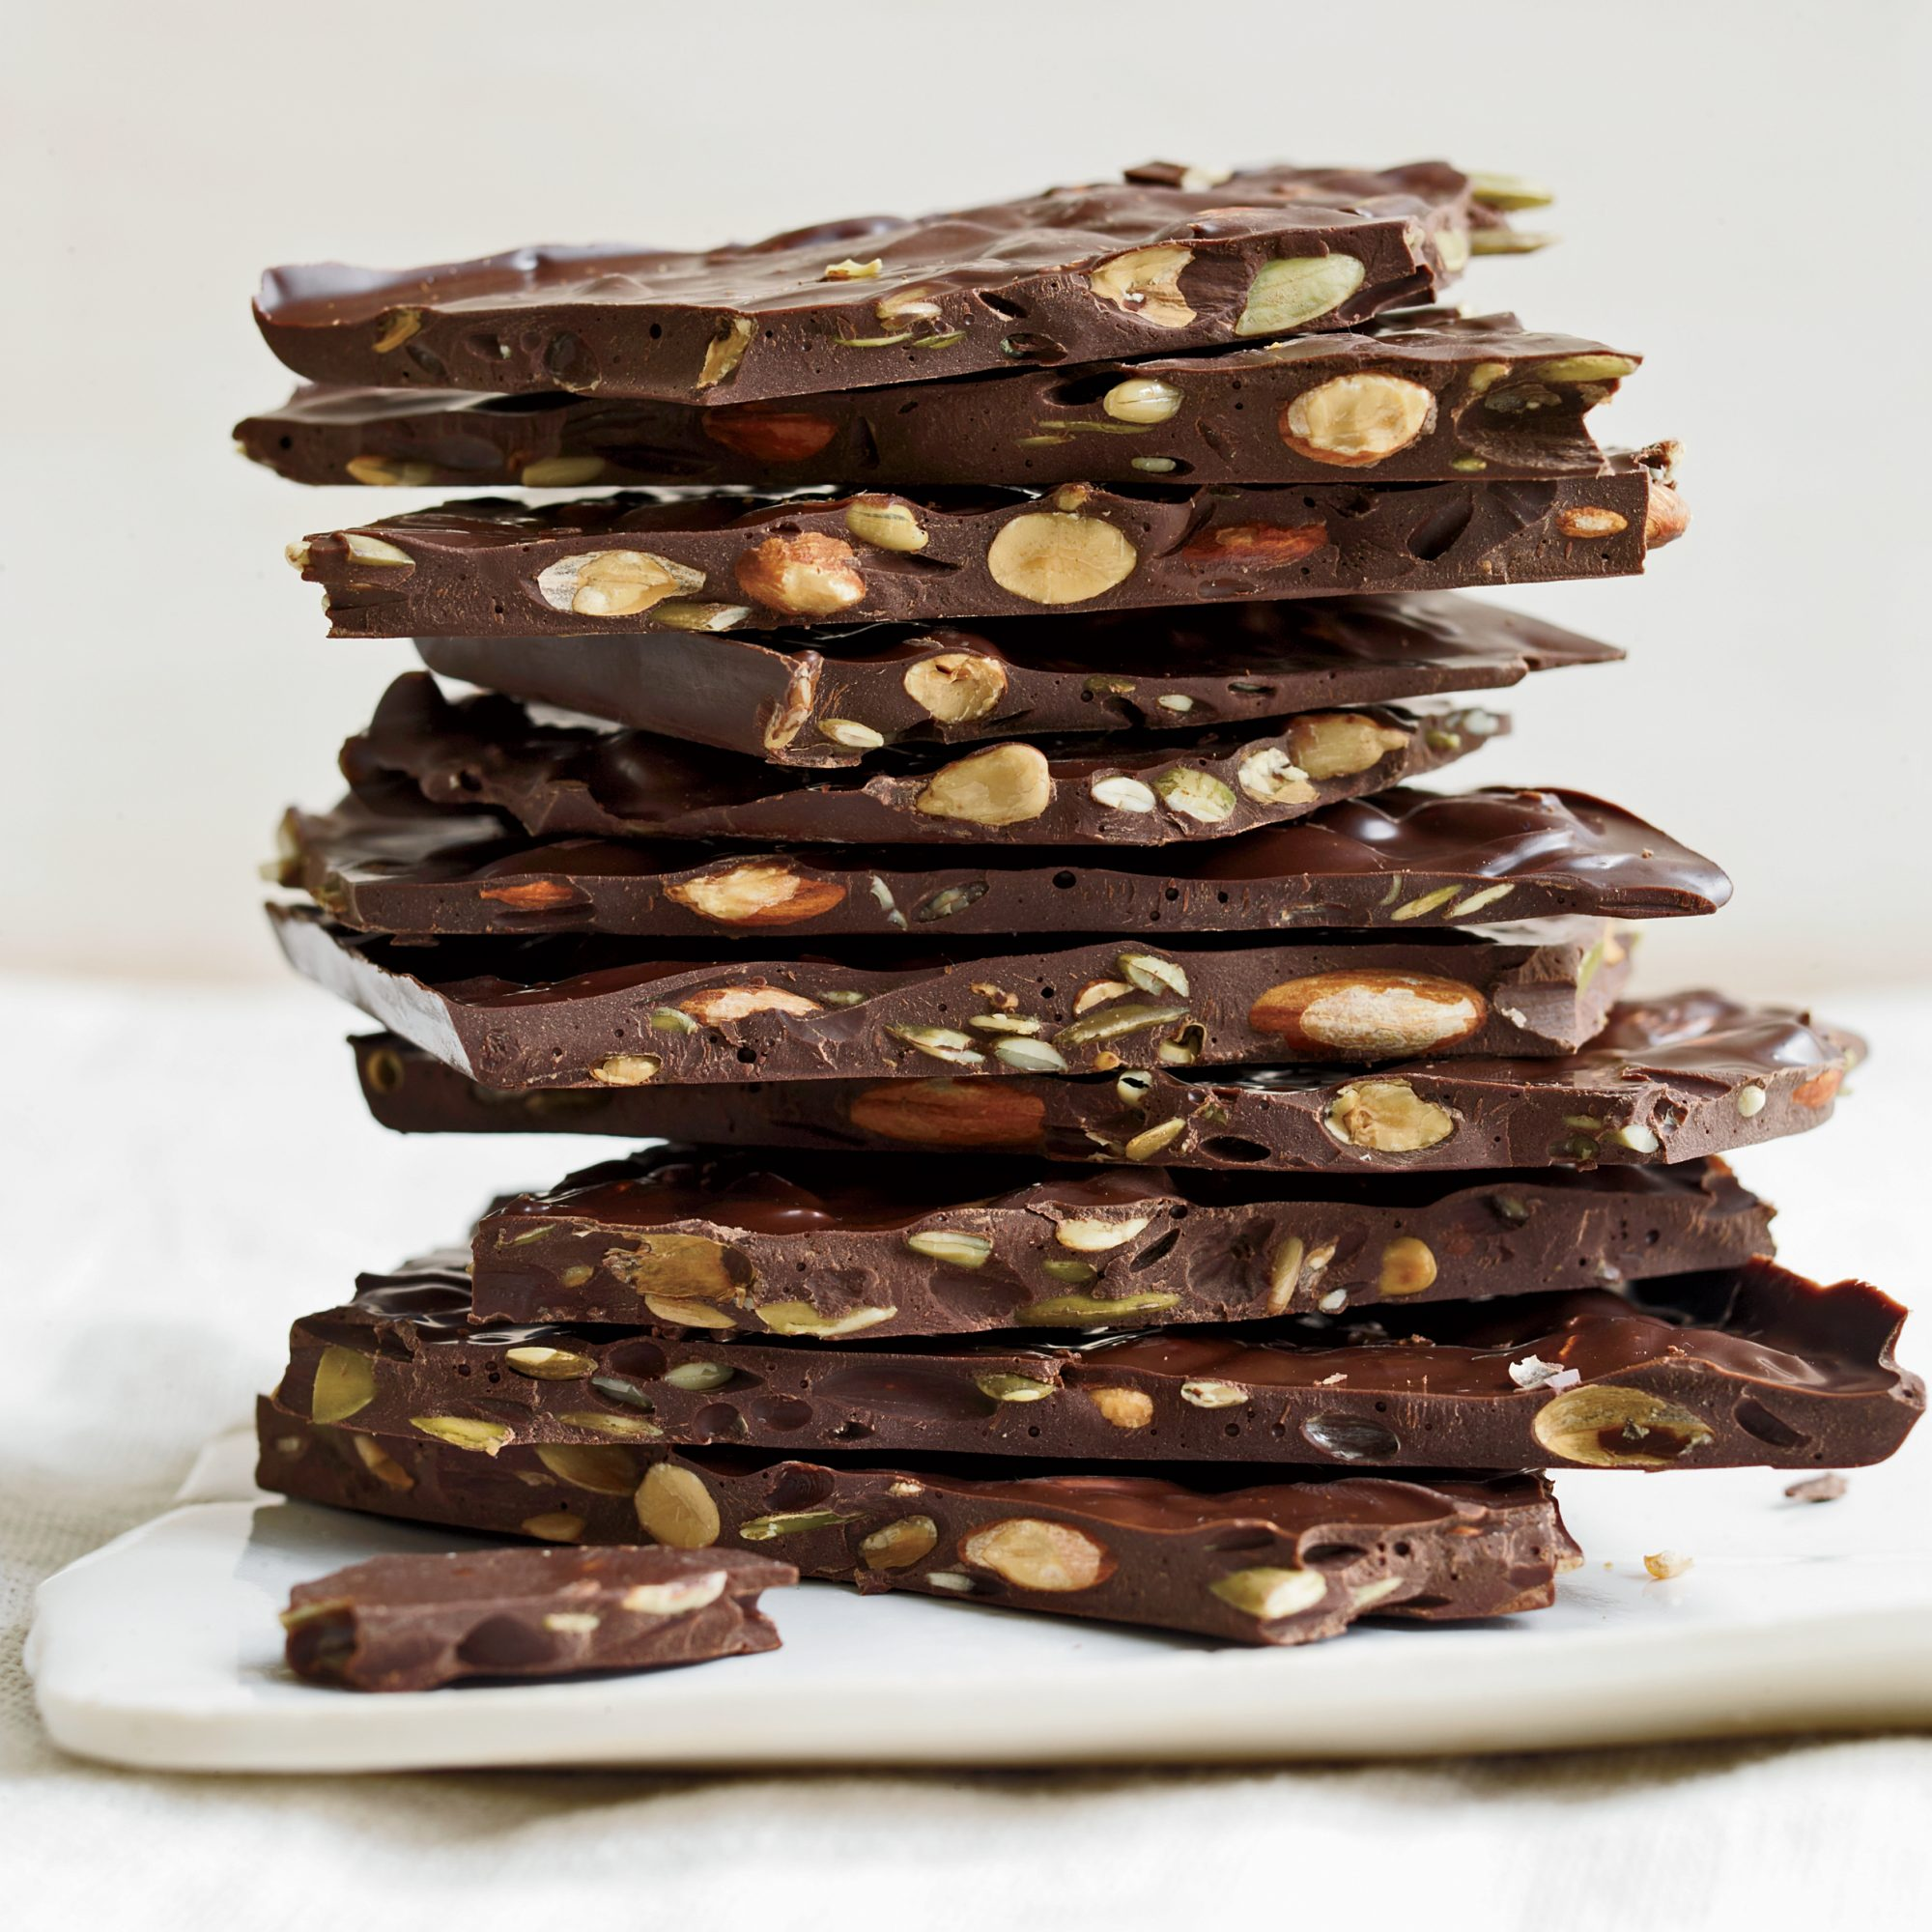 201103-r-chocolate-bark.jpg